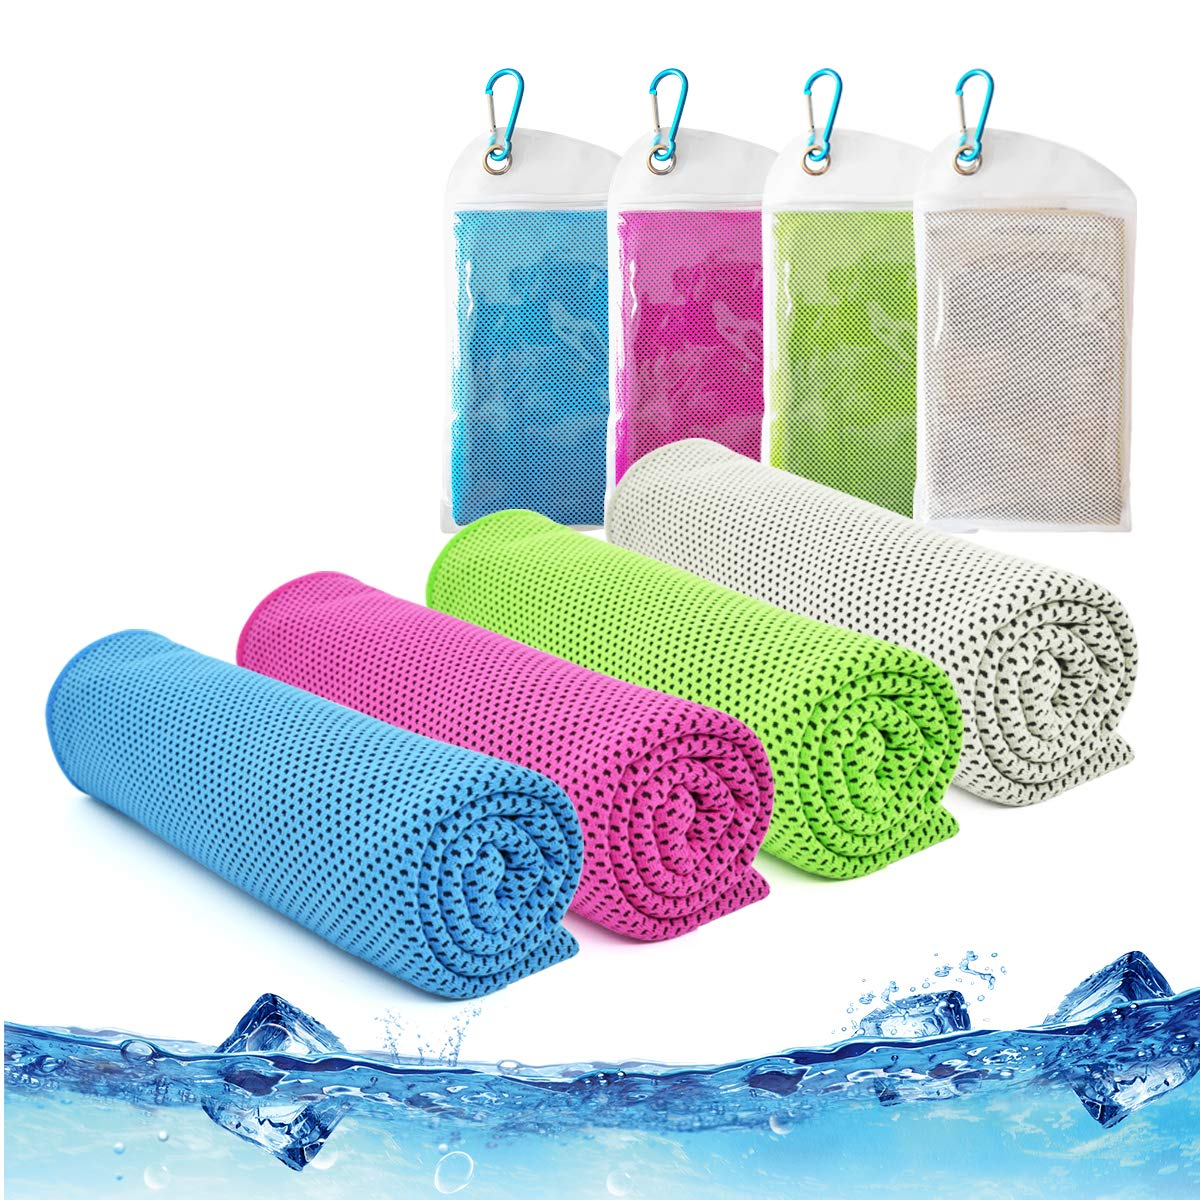 Cooling Towel,Vinsco 4 Pack Cool Towels Microfiber Chilly Ice Cold Head Band Bandana Neck Wrap (40''x 12'') for Athletes Men Women Youth Kids Dogs Yoga Outdoor Golf Running Hiking Sports Camping Travel